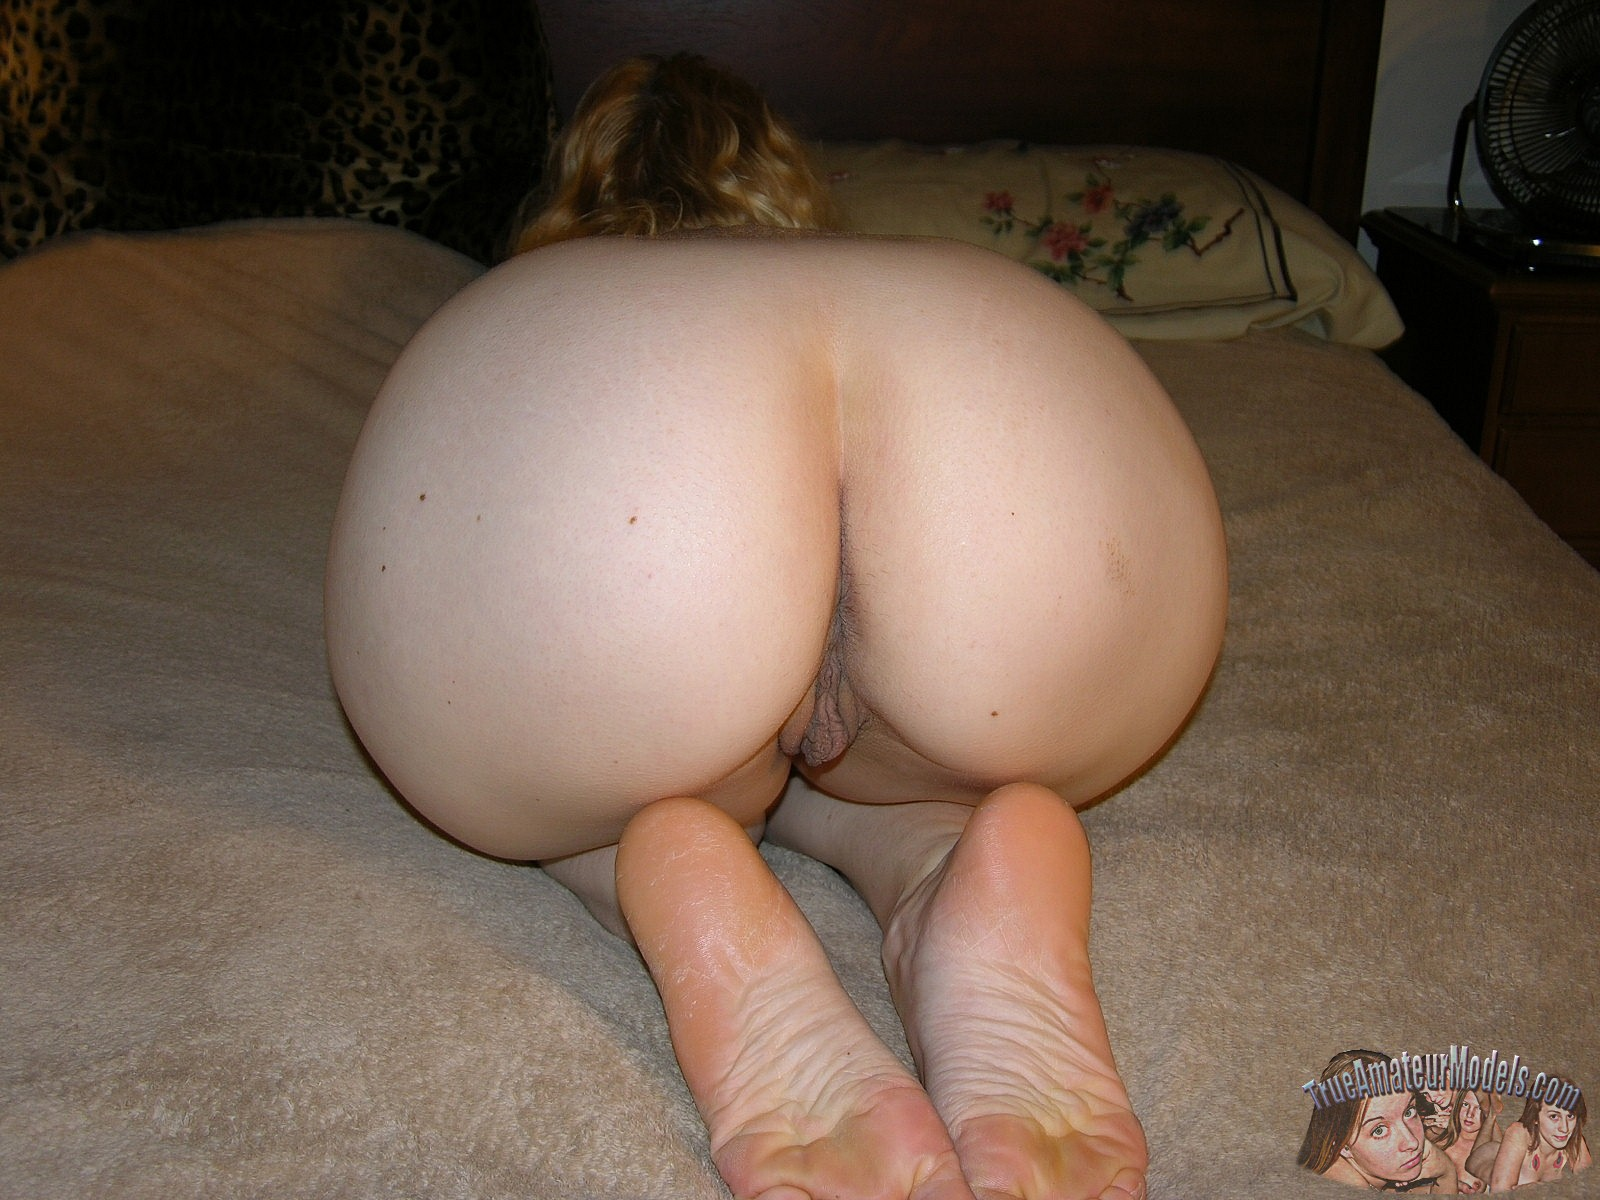 Ass and feet pictures